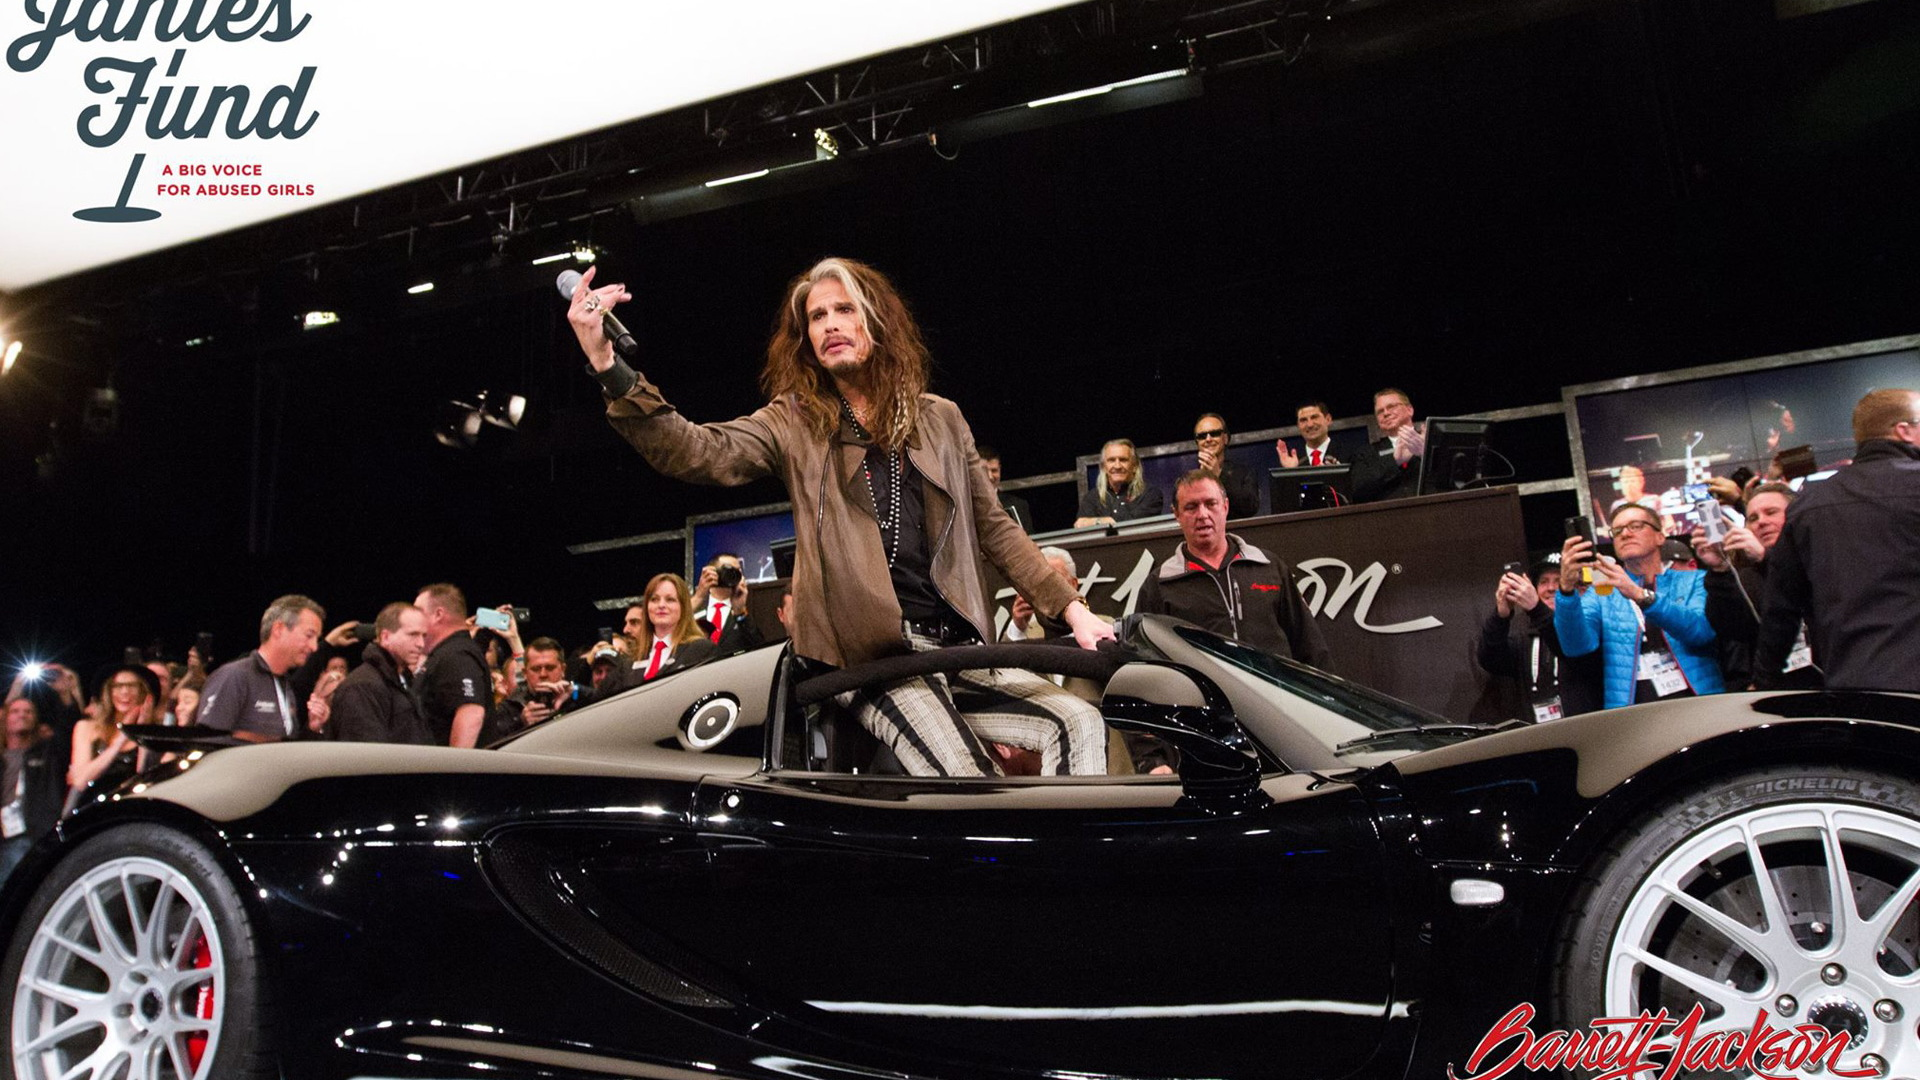 Steven Tyler at the auction of his 2013 Hennessey Venom GT Spyder - January, 2017